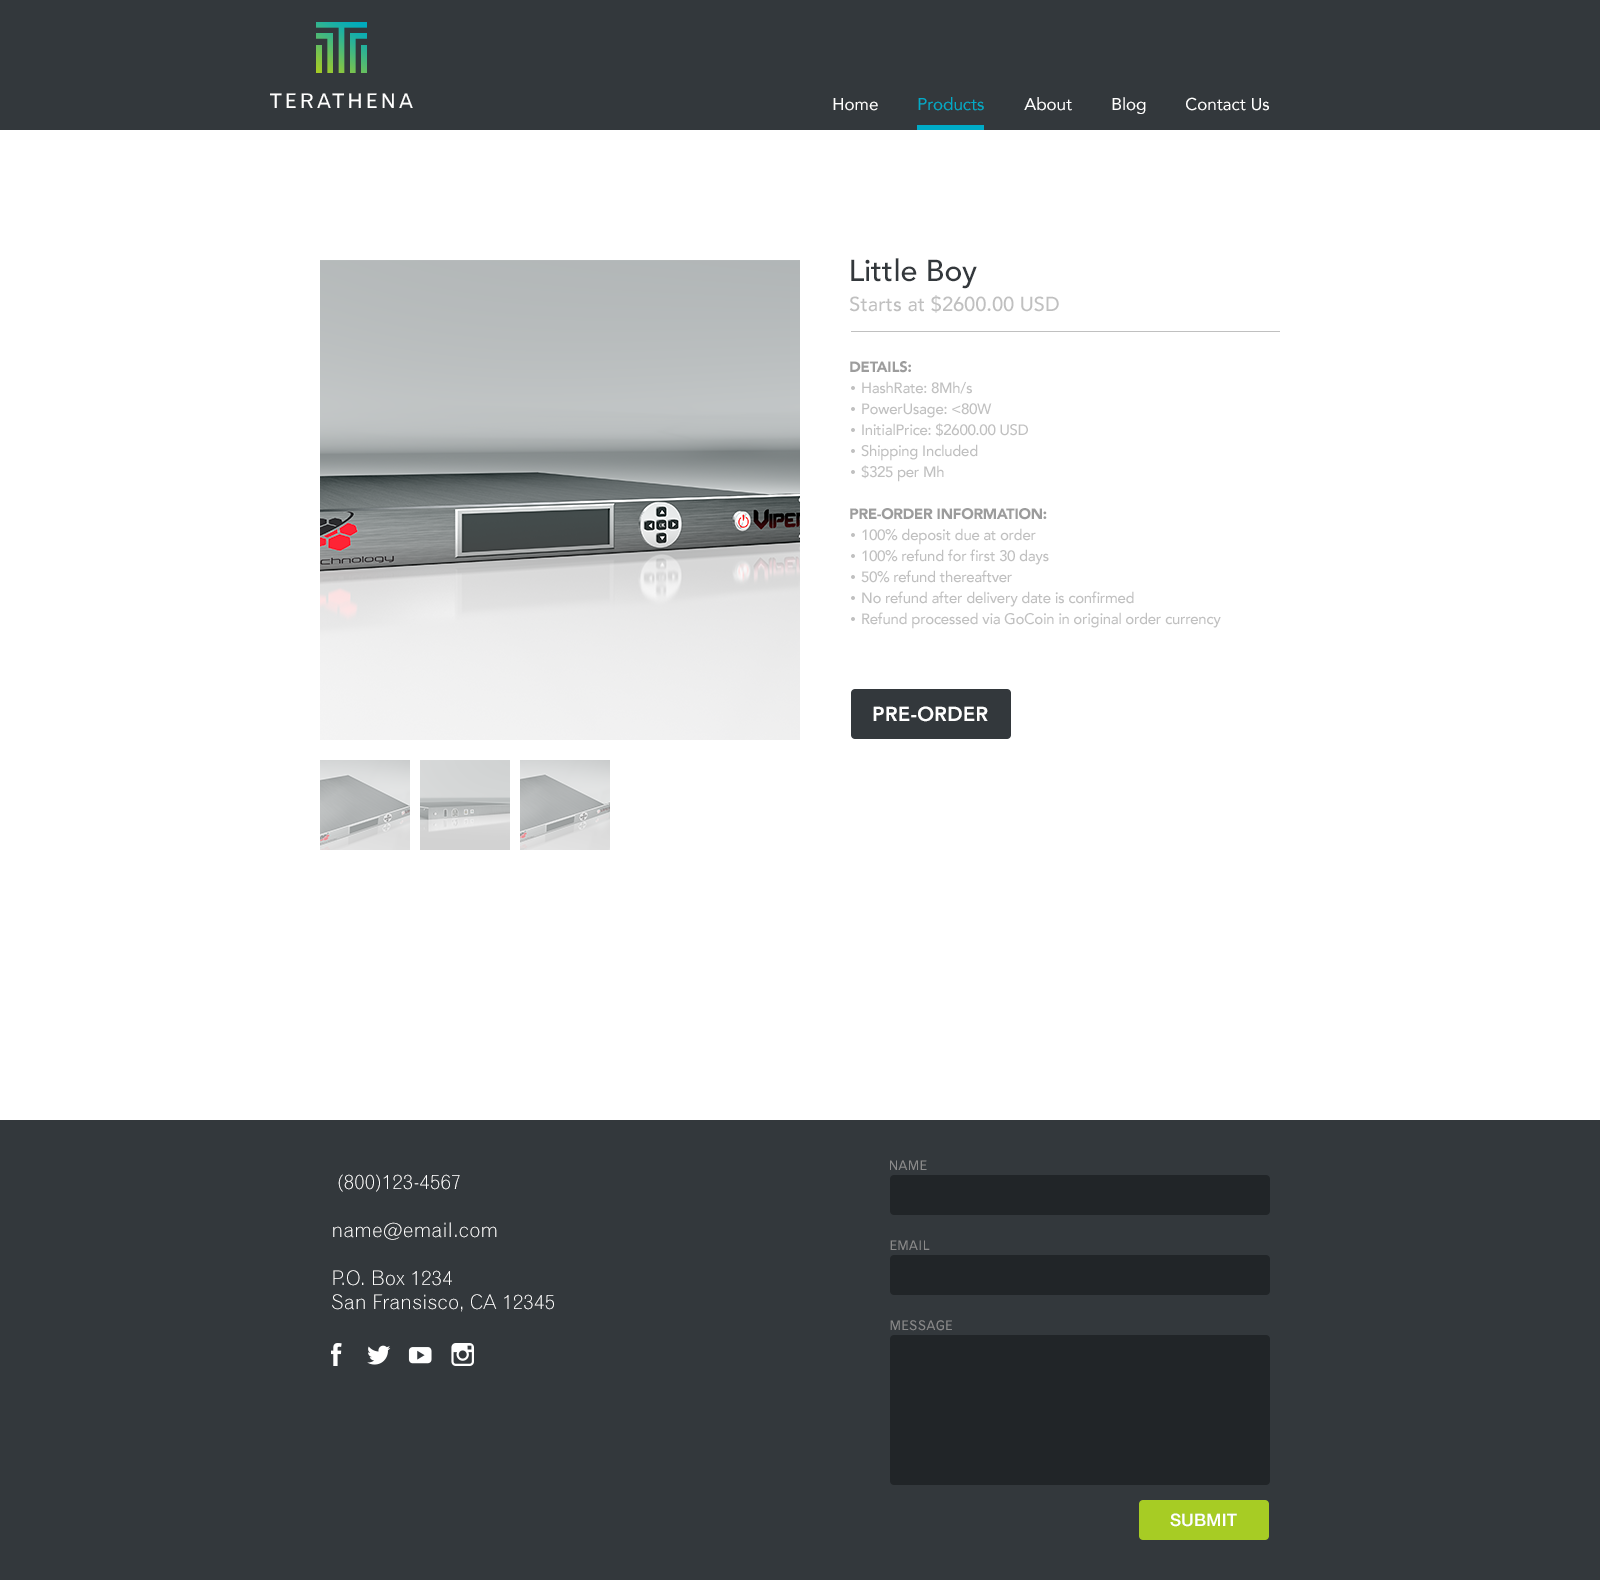 terathena_product_page.png